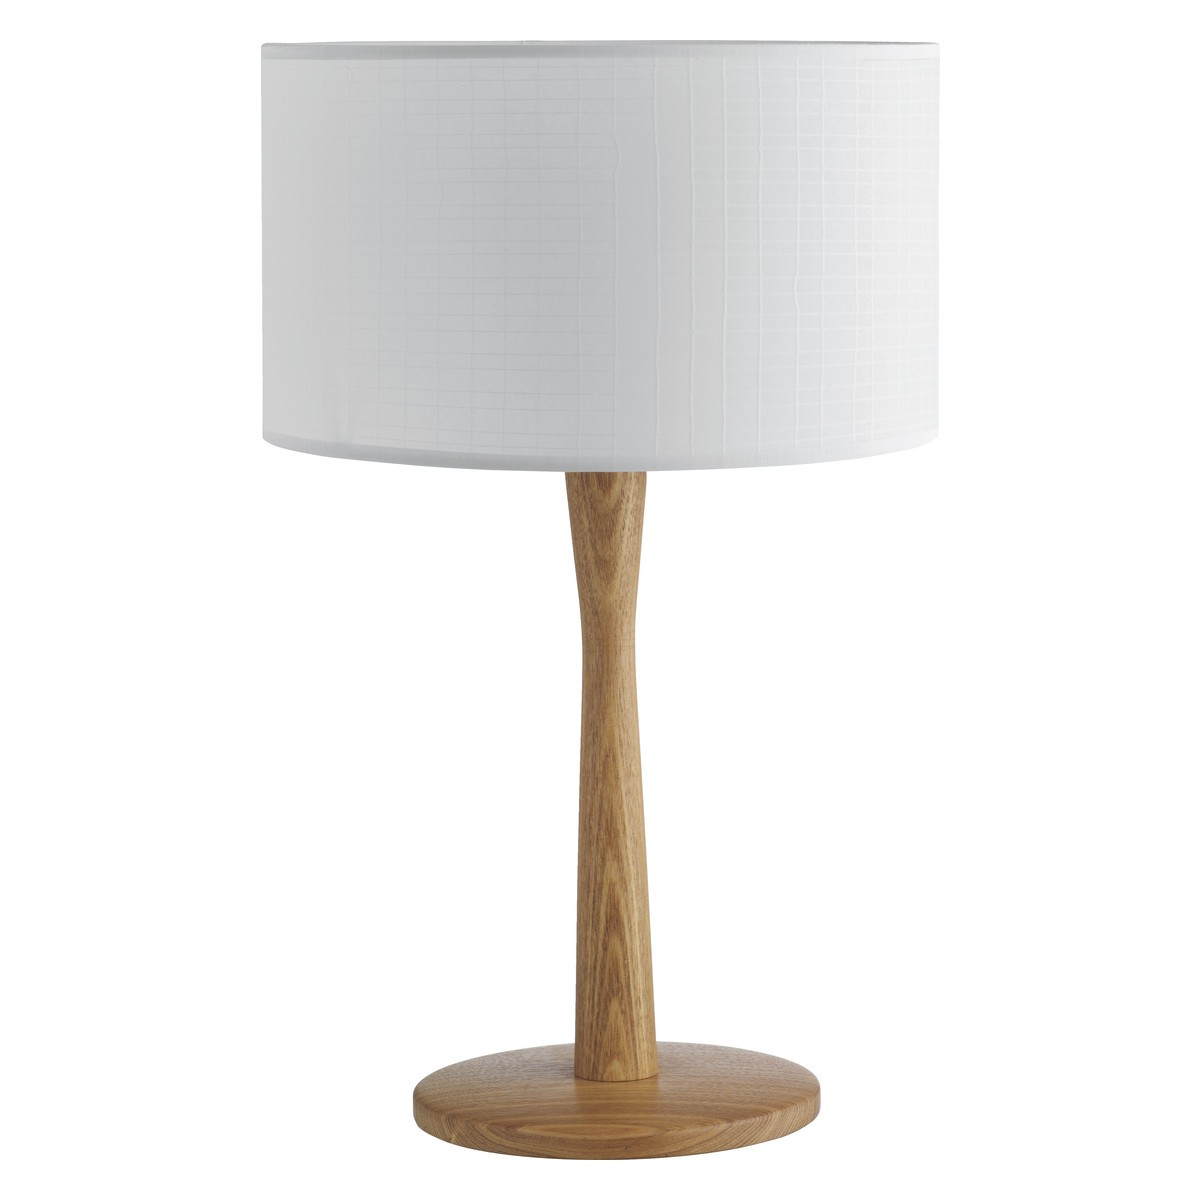 The Essence Of Having Wood table lamps